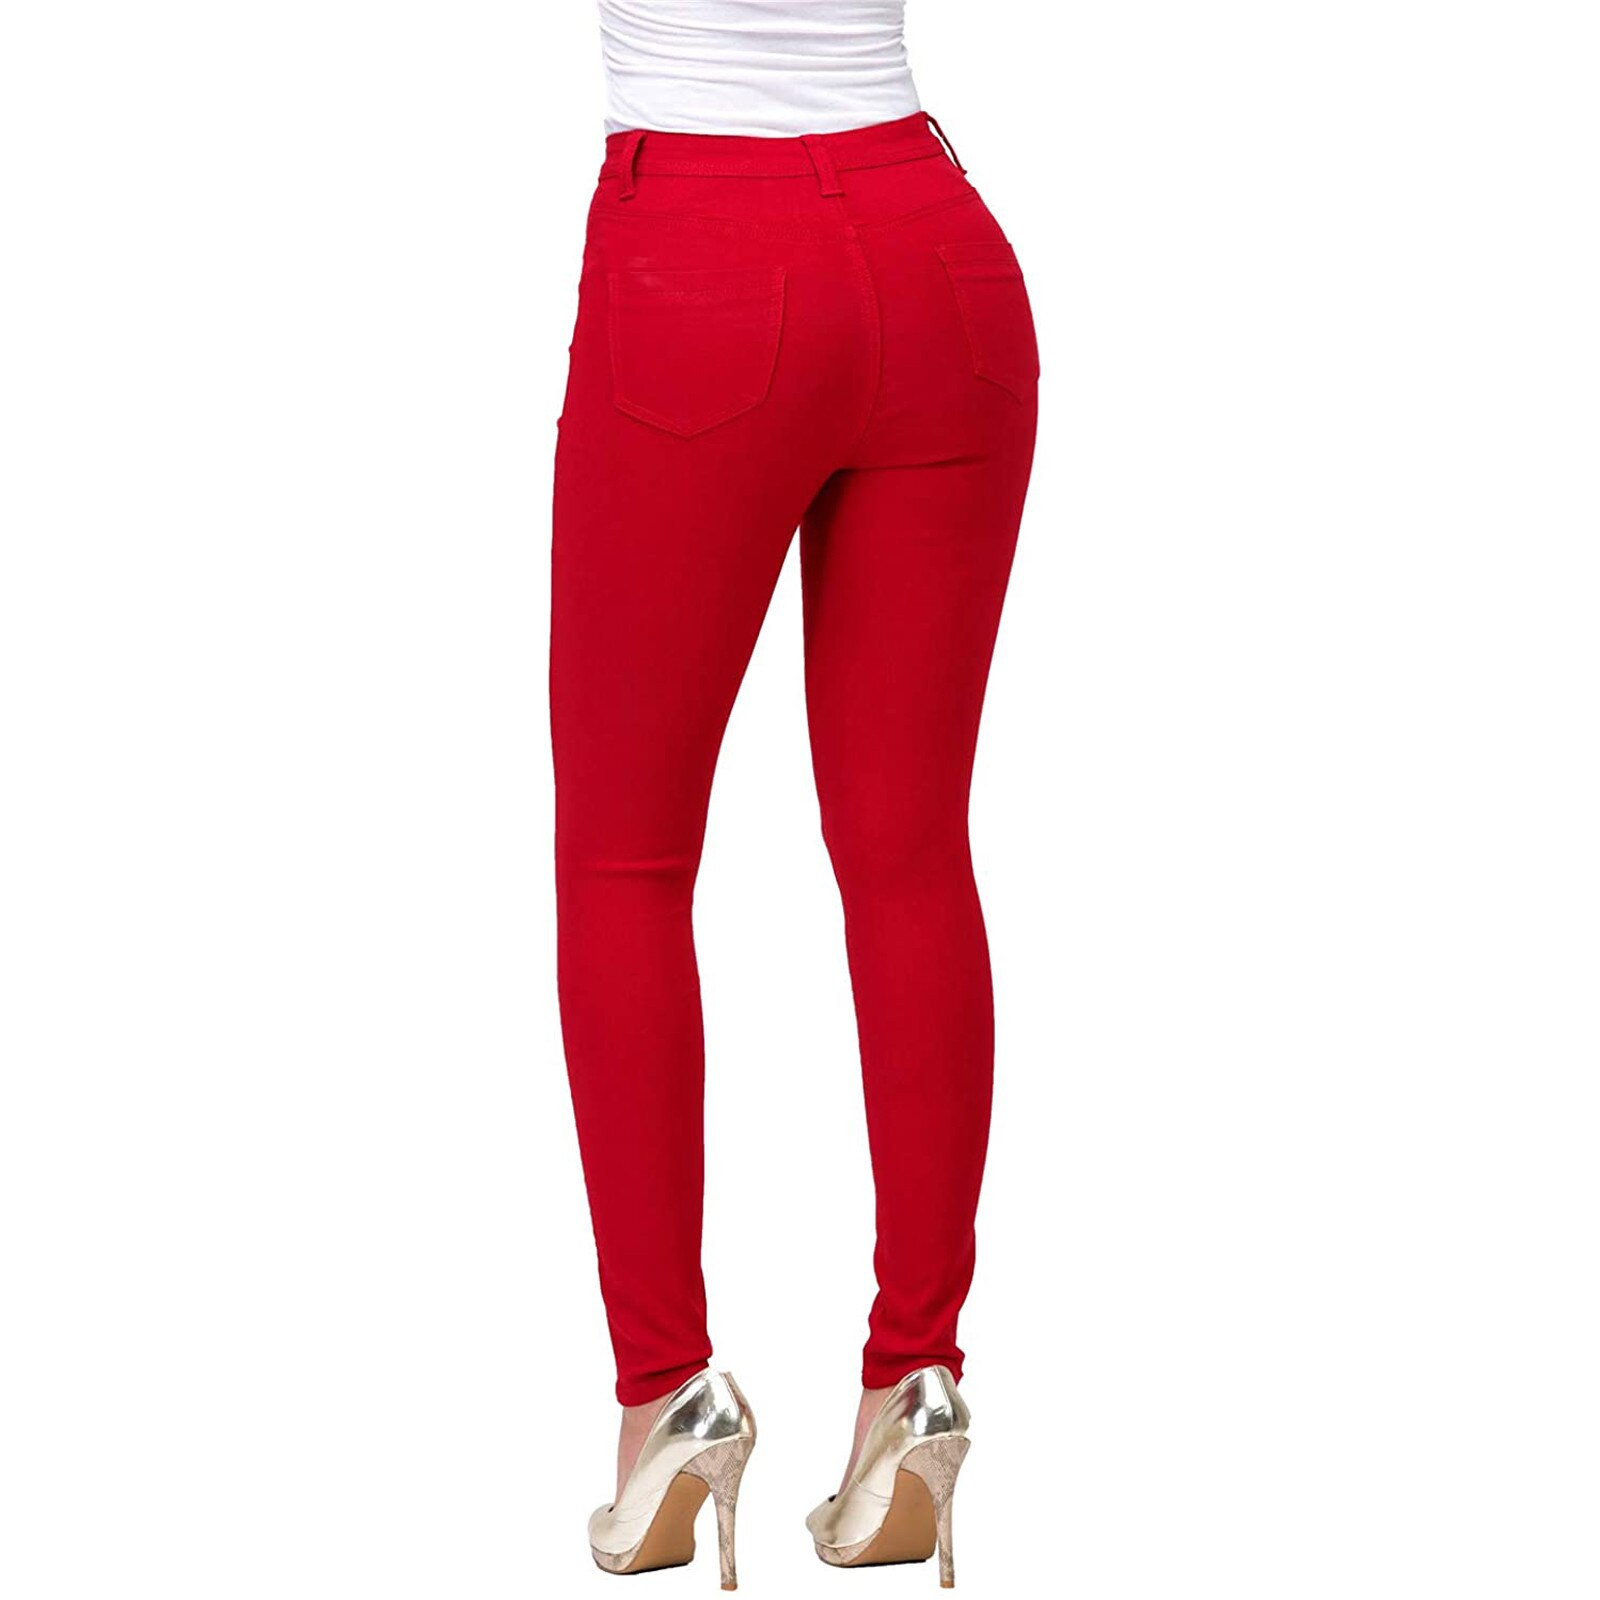 Women's High-Waisted Pants Small Feet Pants Fashion Solid Color Slim Fit Trousers Ladies Casual Pants Pantalones De Mujer